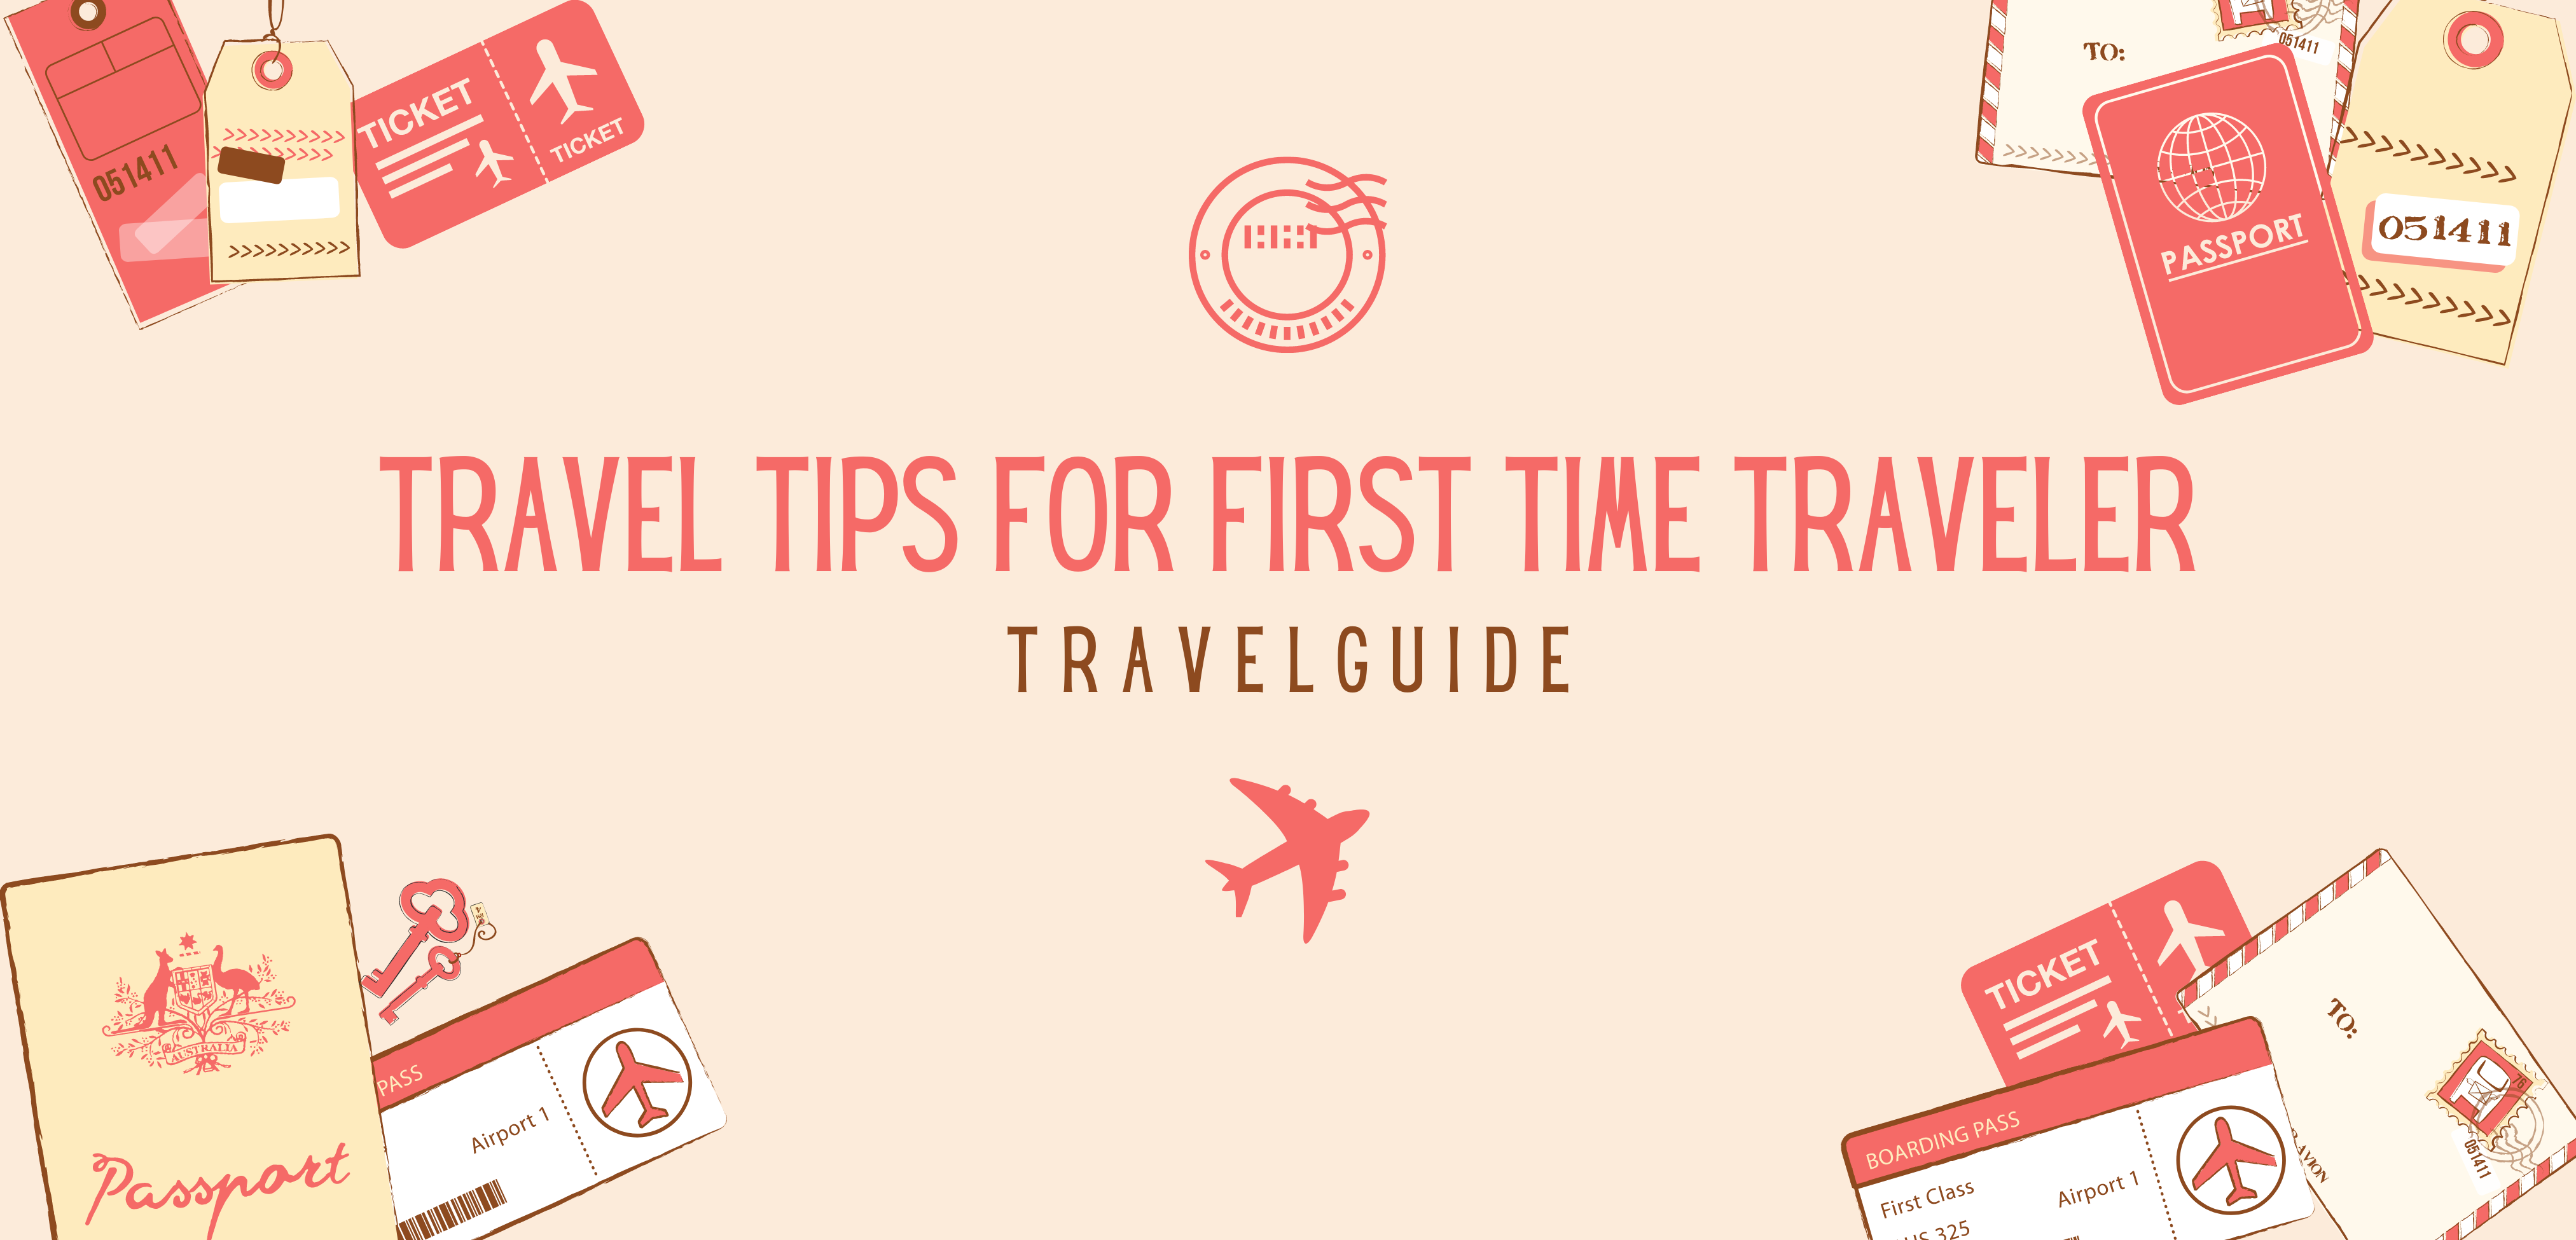 Travel tips for first time travelers travel guide